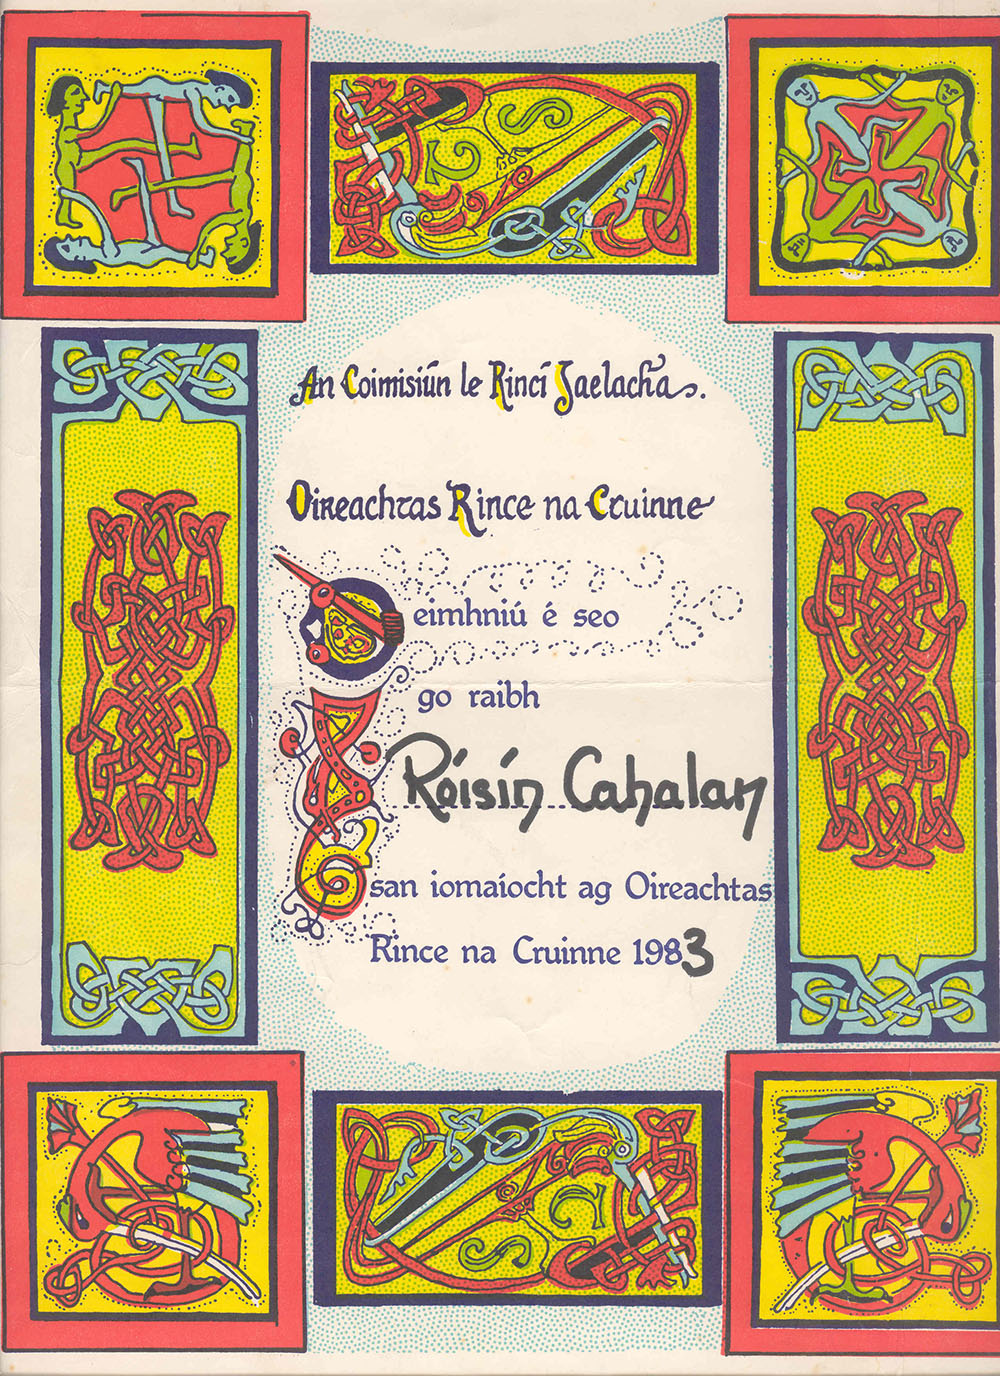 Róisín Cahalan's certificate of participation in the World Irish Dancing Championships from 1983, featuring Celtic ornamentations